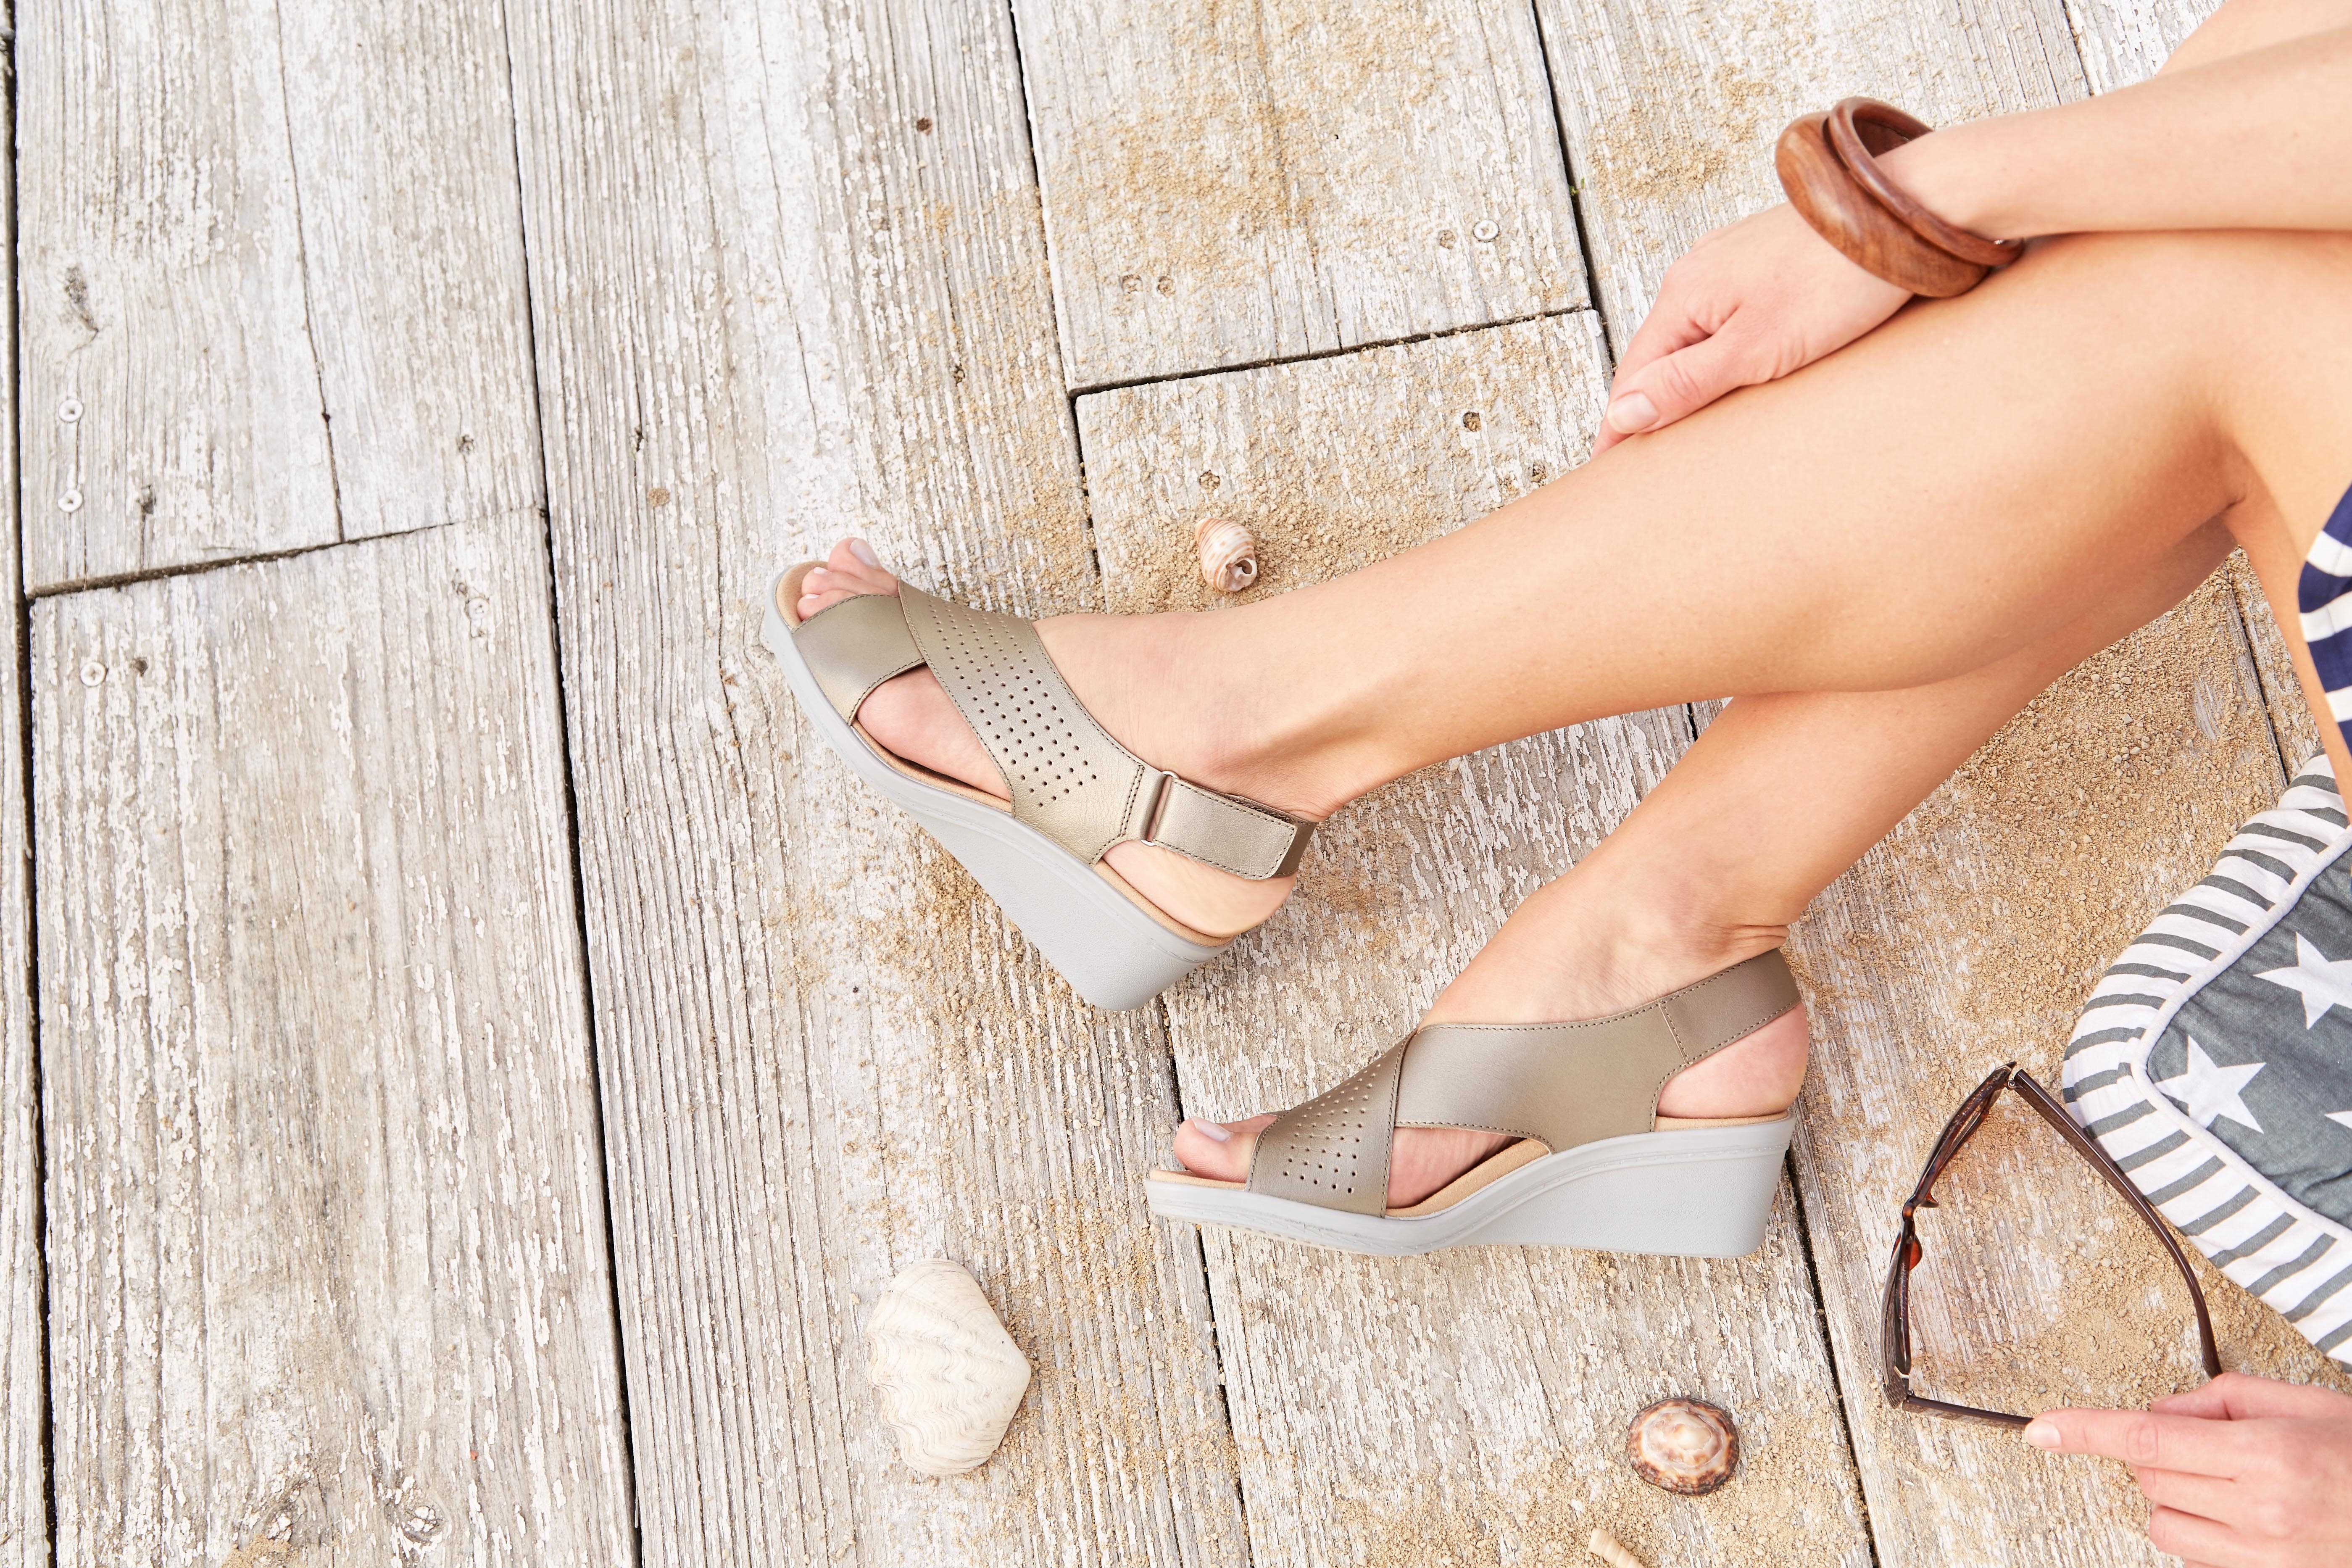 Hotter Originals, Hotter shoes, British made shoes, canvas pumps, trainers, active shoes, floral trend, SS17, new season shoes, leather shoes, comfortable women's shoes, casual shoes, summer sandals, Holiday edit, holiday shop, holiday shoes, wide fitting shoes